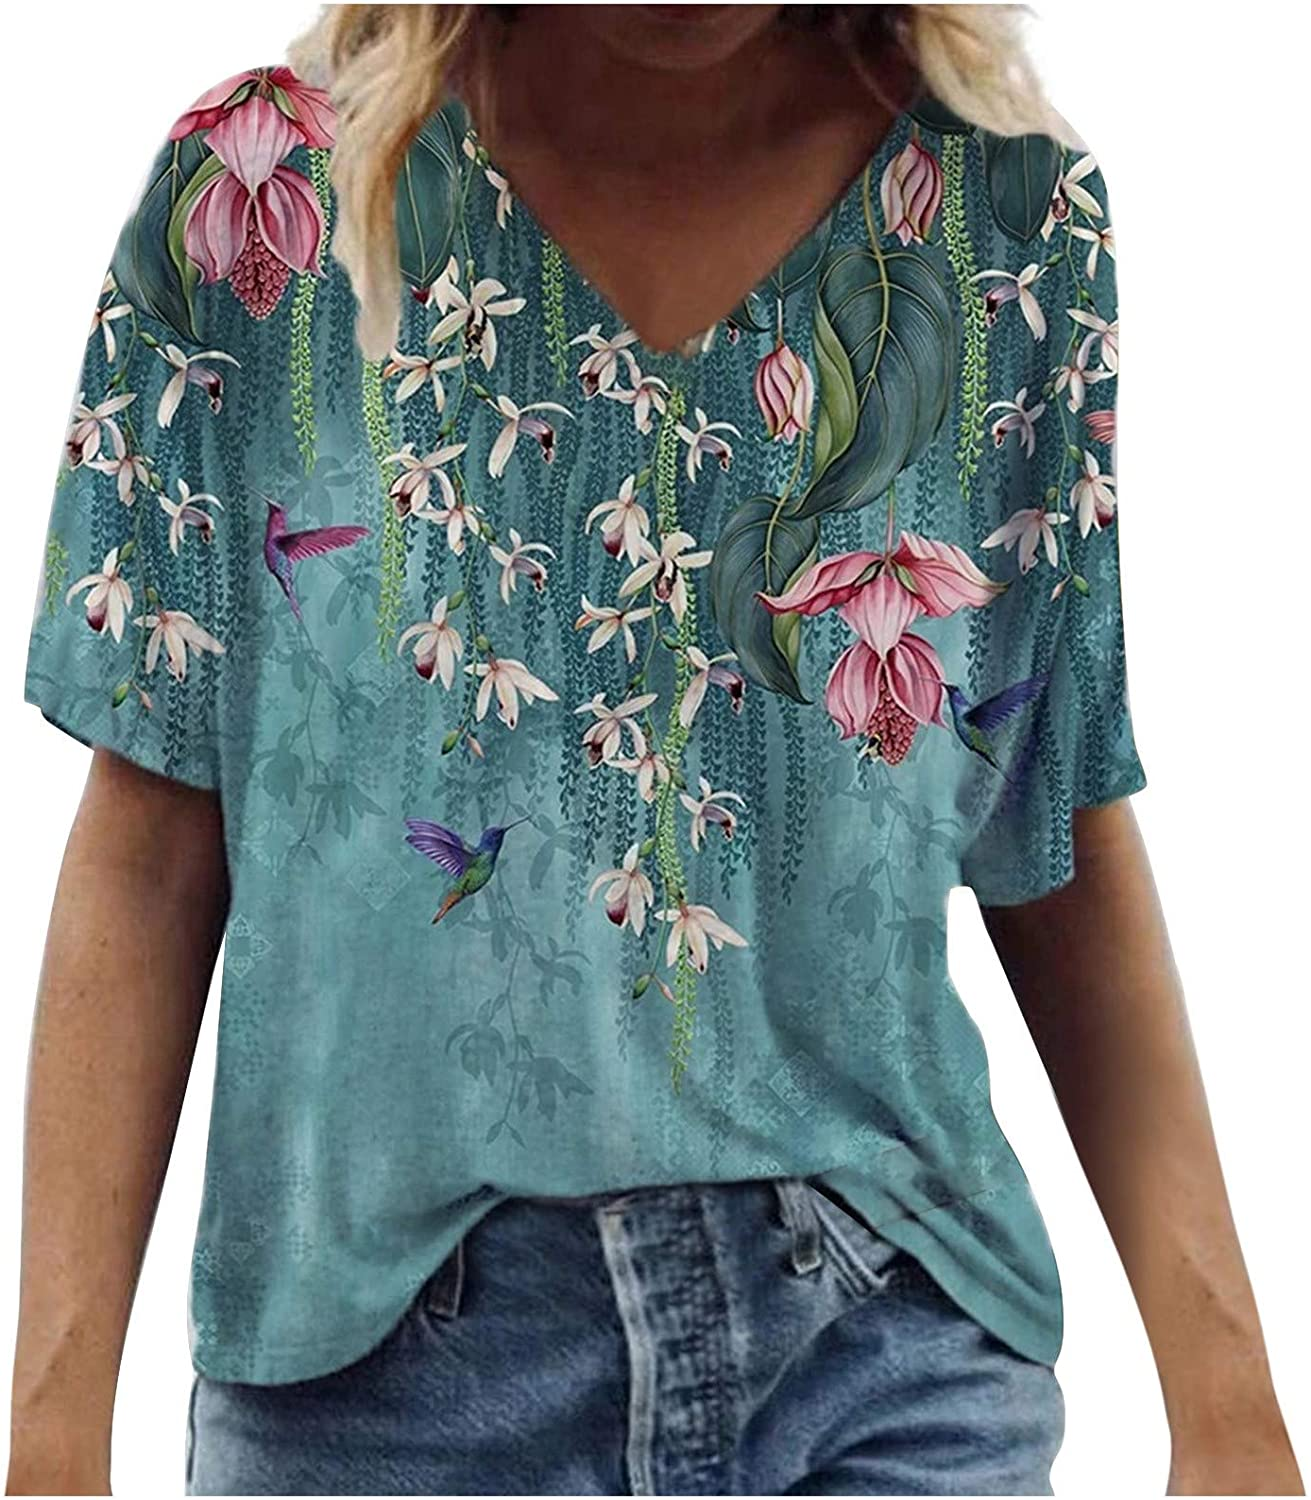 AODONG Summer Tops for Women Short Sleeve, Womens V Neck Colorful Floral Printed Tees Shirt Casual Comfy Tunics Blouses